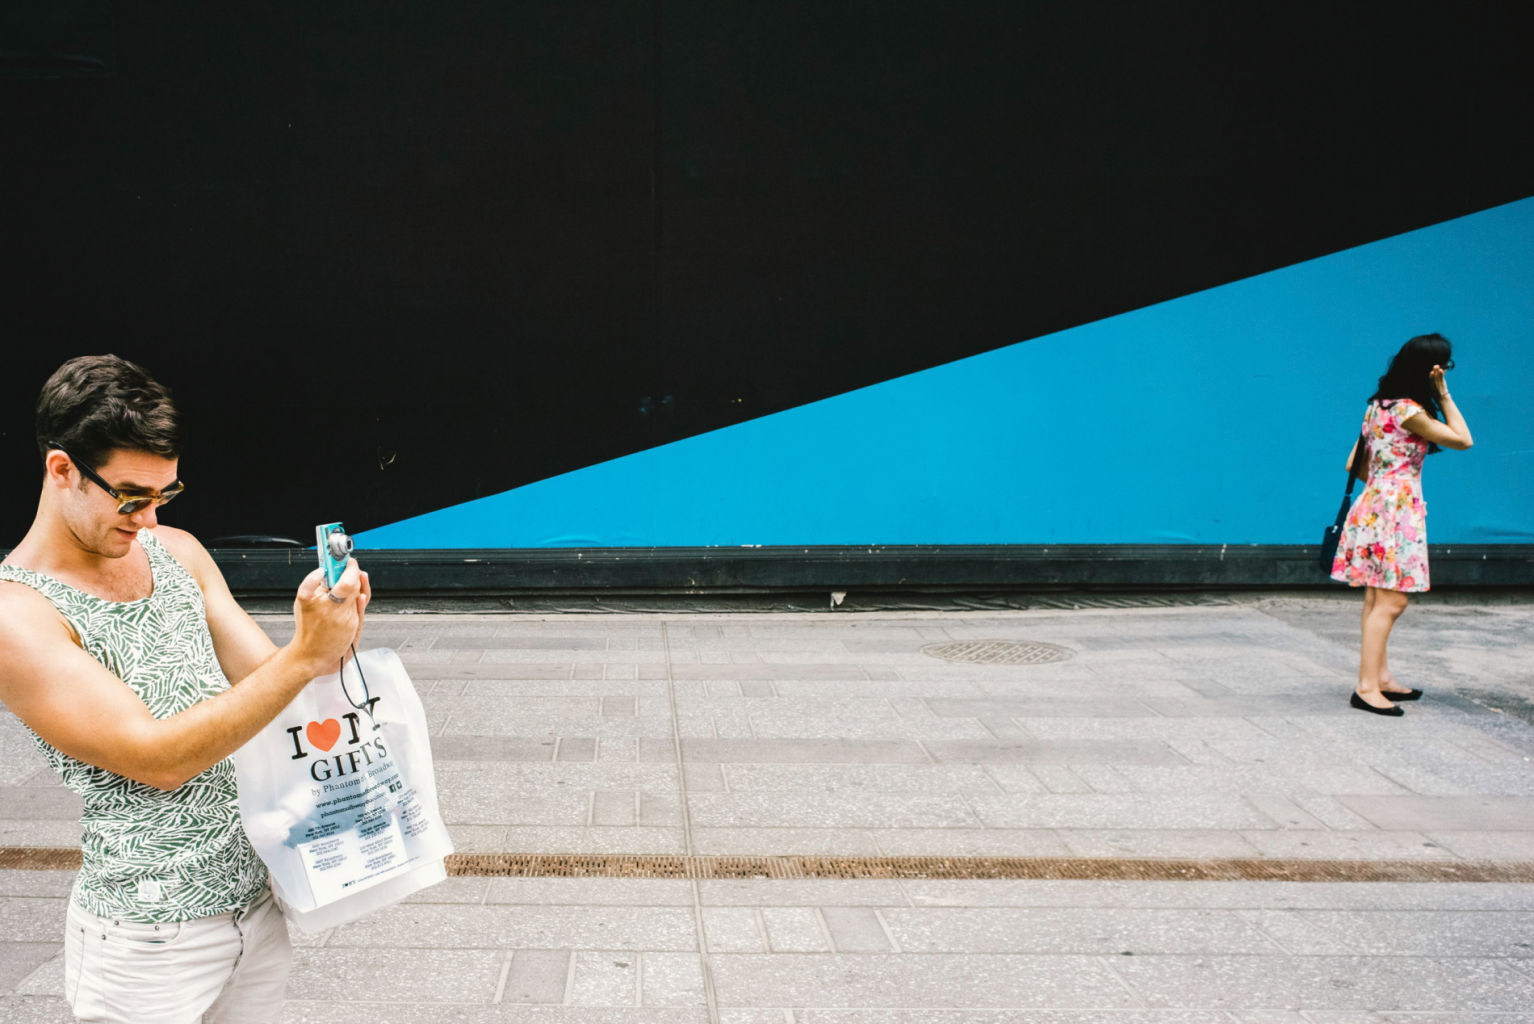 Juxtaposition in Photography by Jonathan Higbee